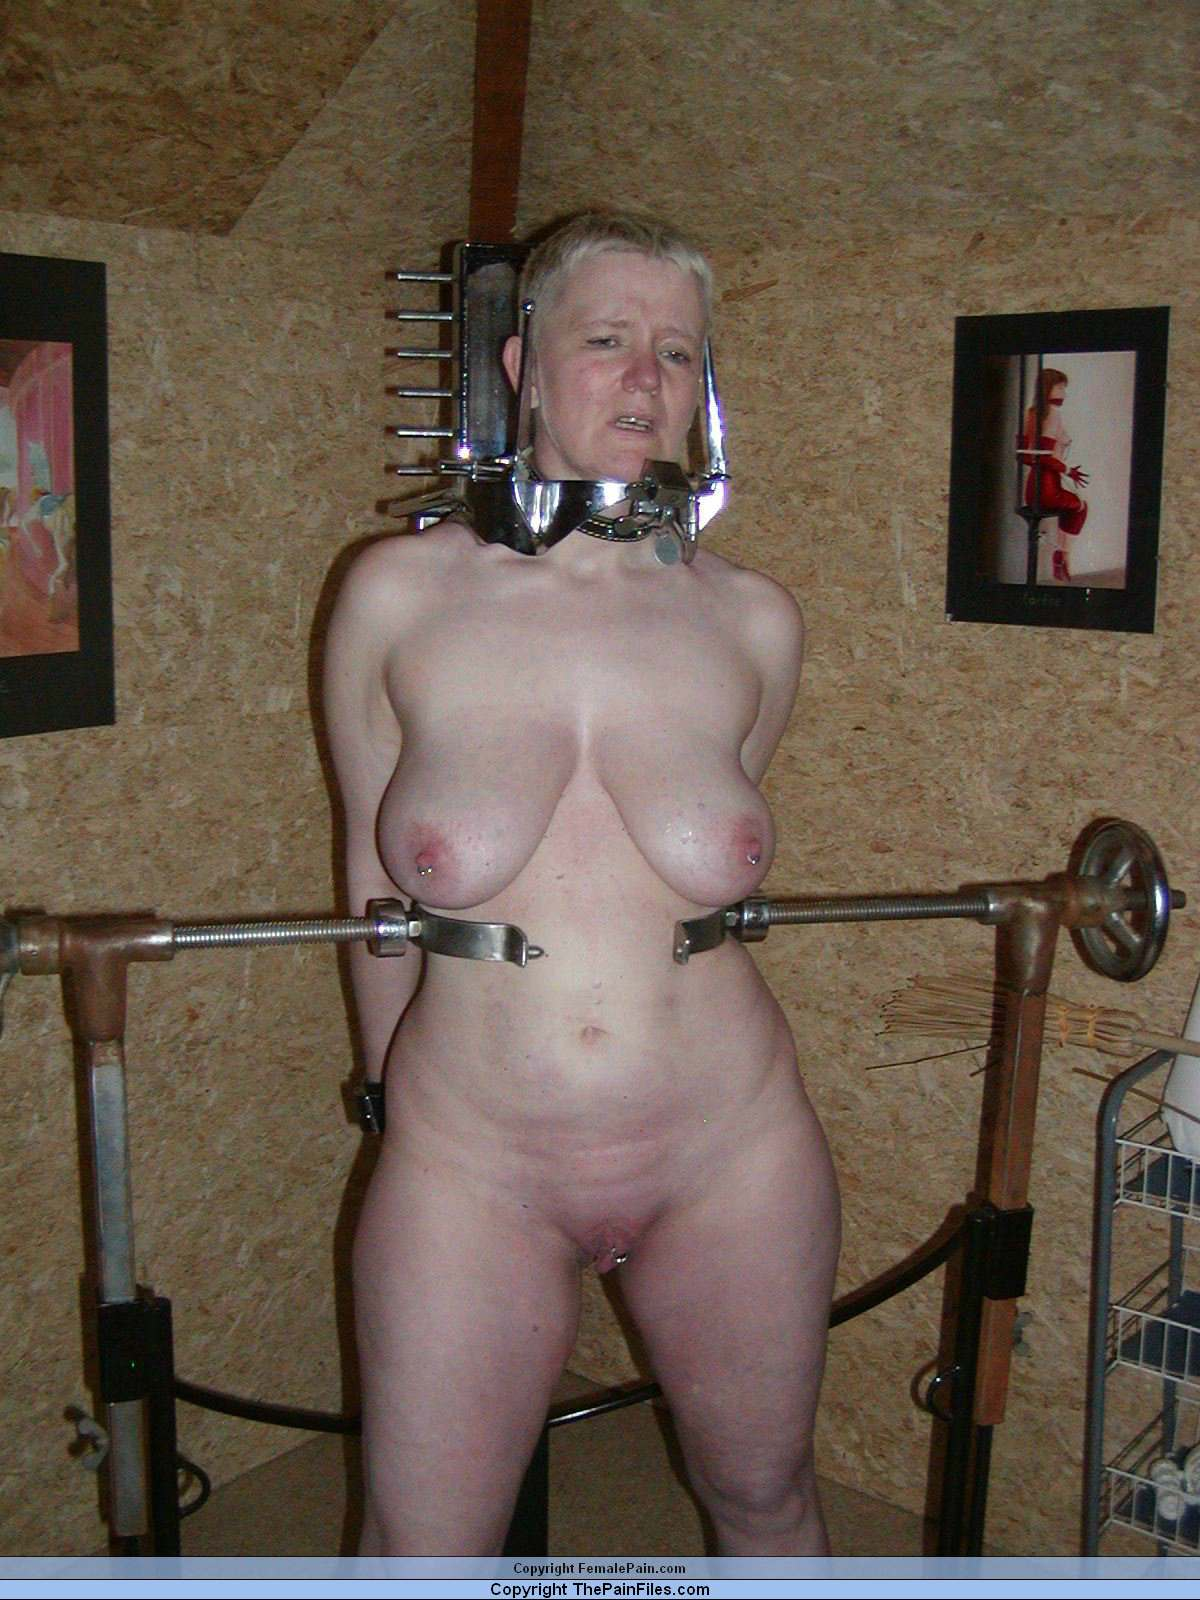 Bdsm sub dominated by male and females 10